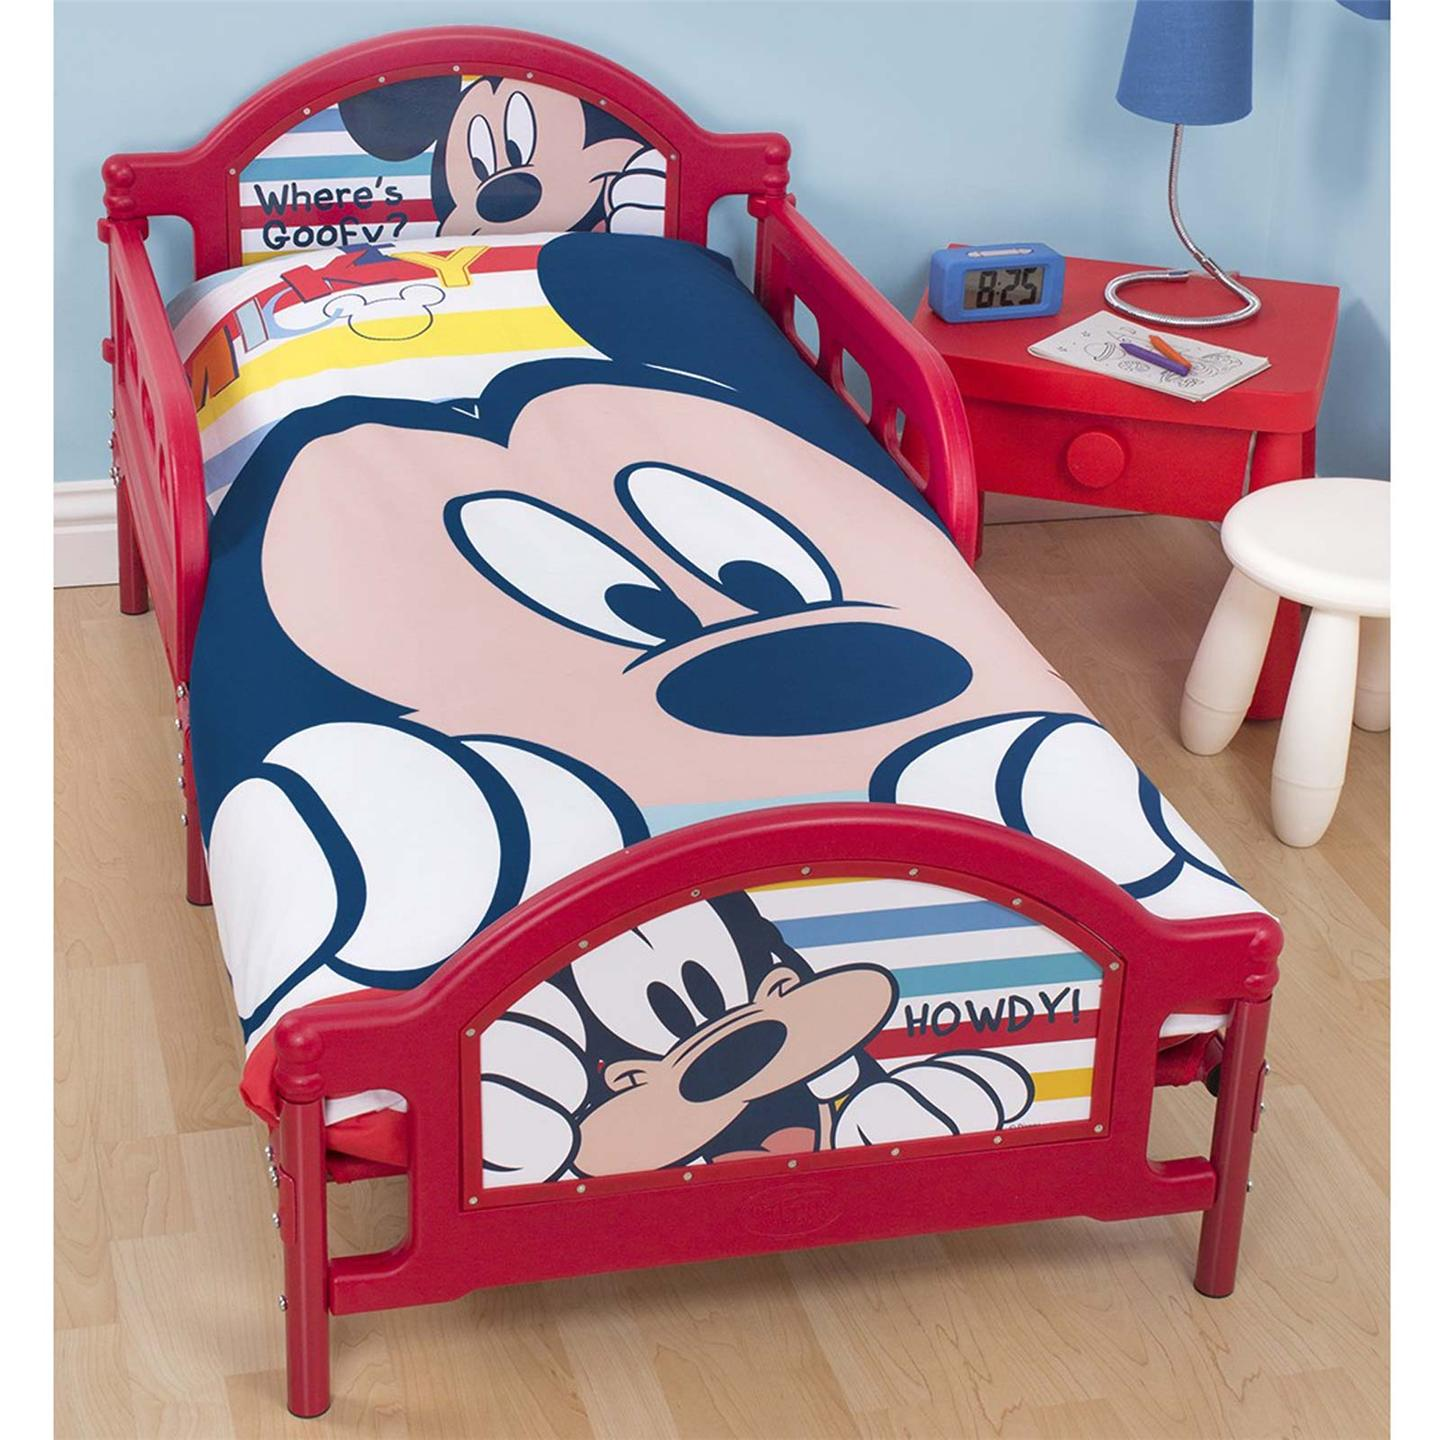 kinderbett bett micky maus play junior kleinkind kind neu. Black Bedroom Furniture Sets. Home Design Ideas